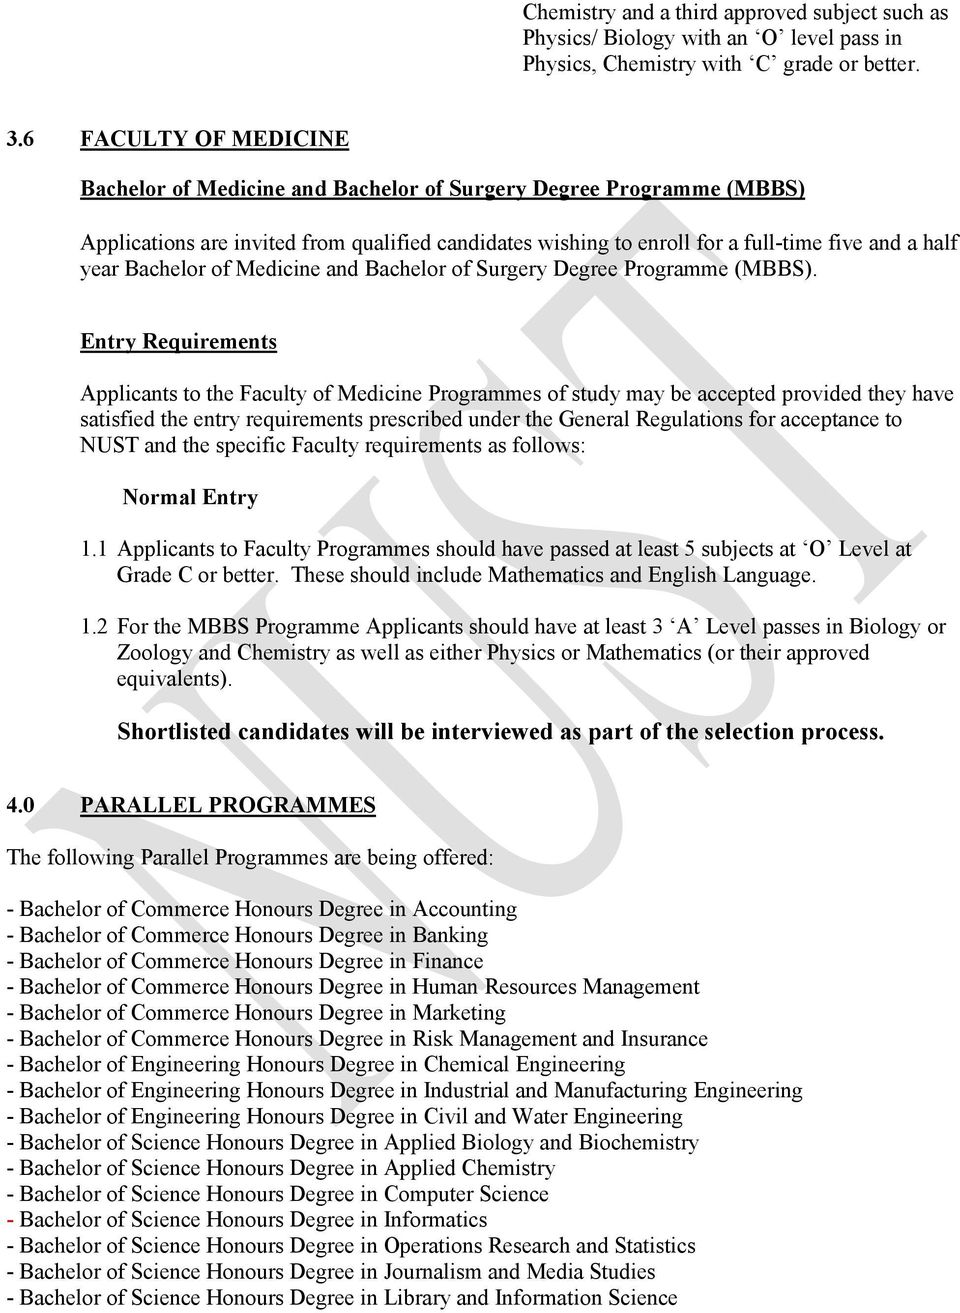 Nust mbbs fee structure